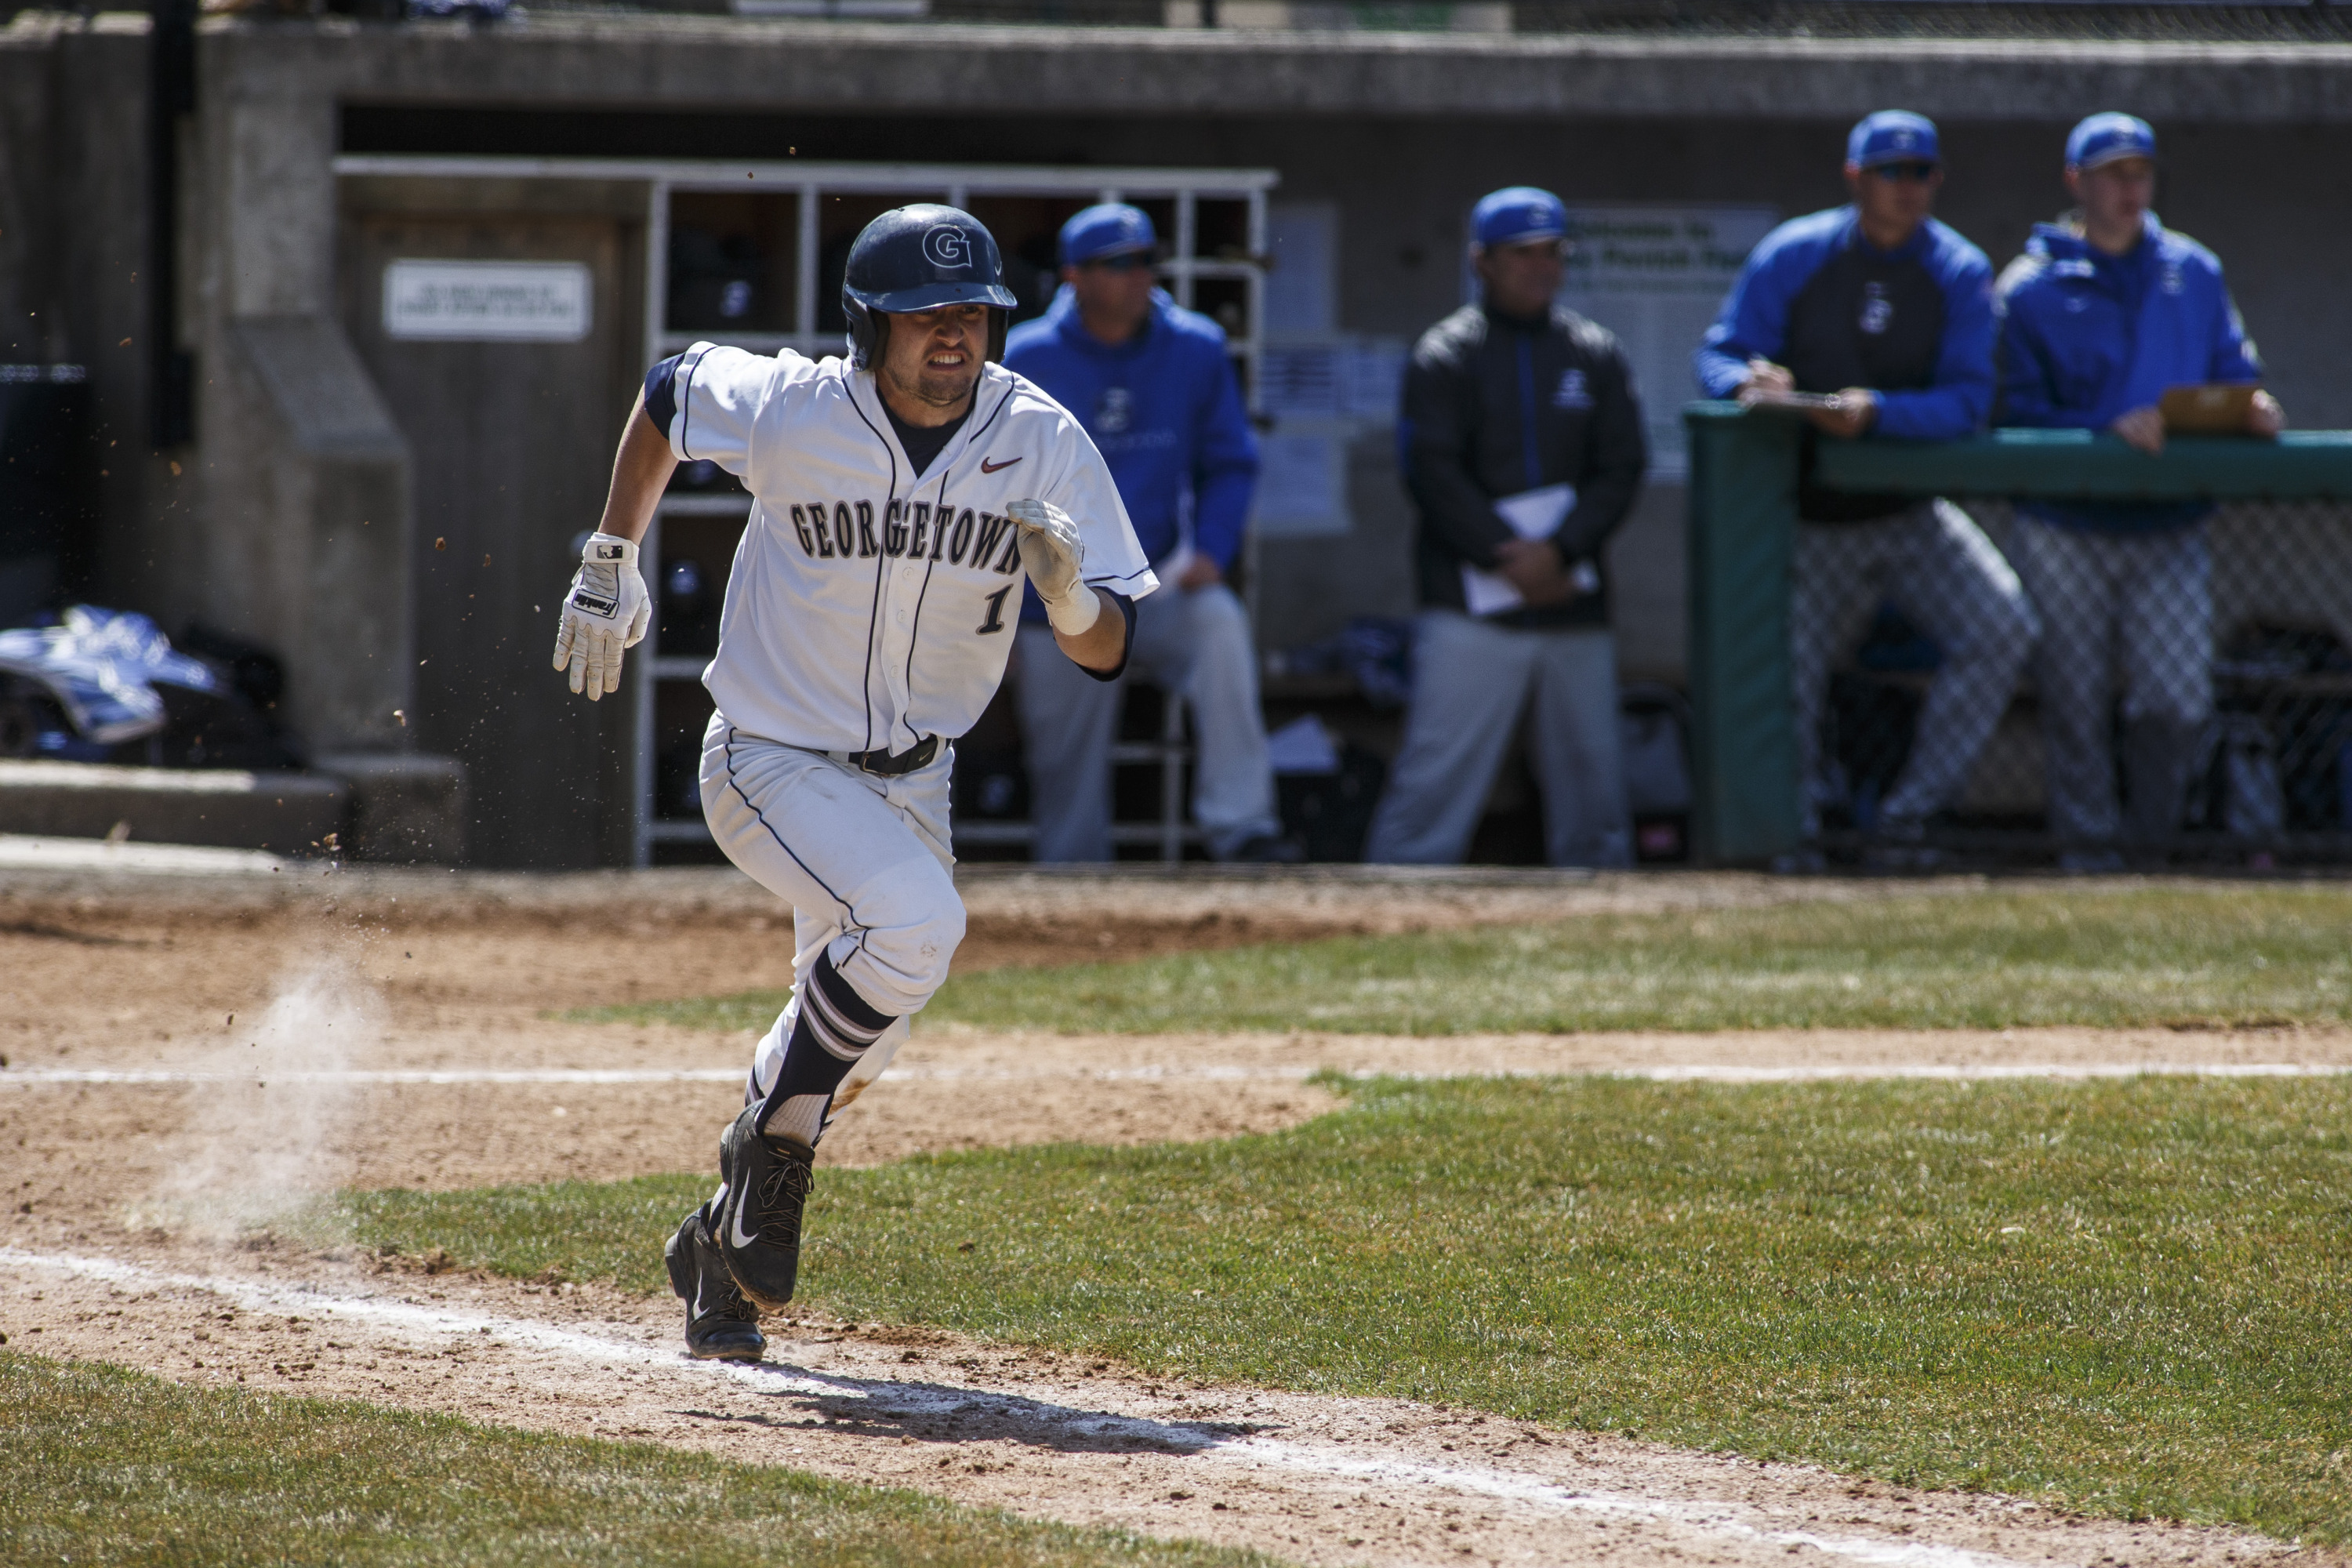 Ryan Busch had five hits, three doubles, three RBI and two runs scored.